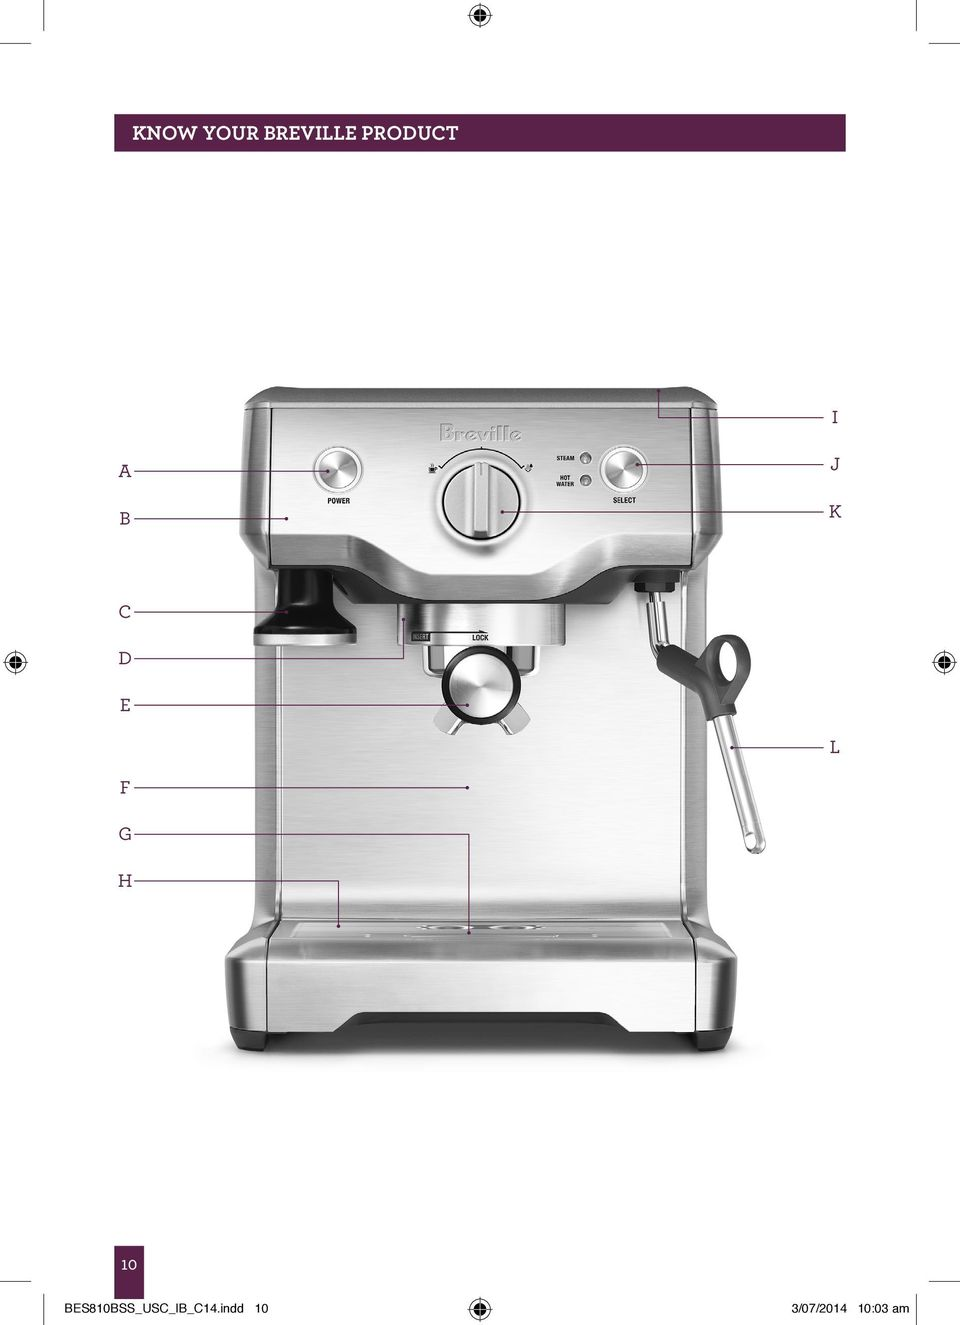 breville nespresso descaling instructions